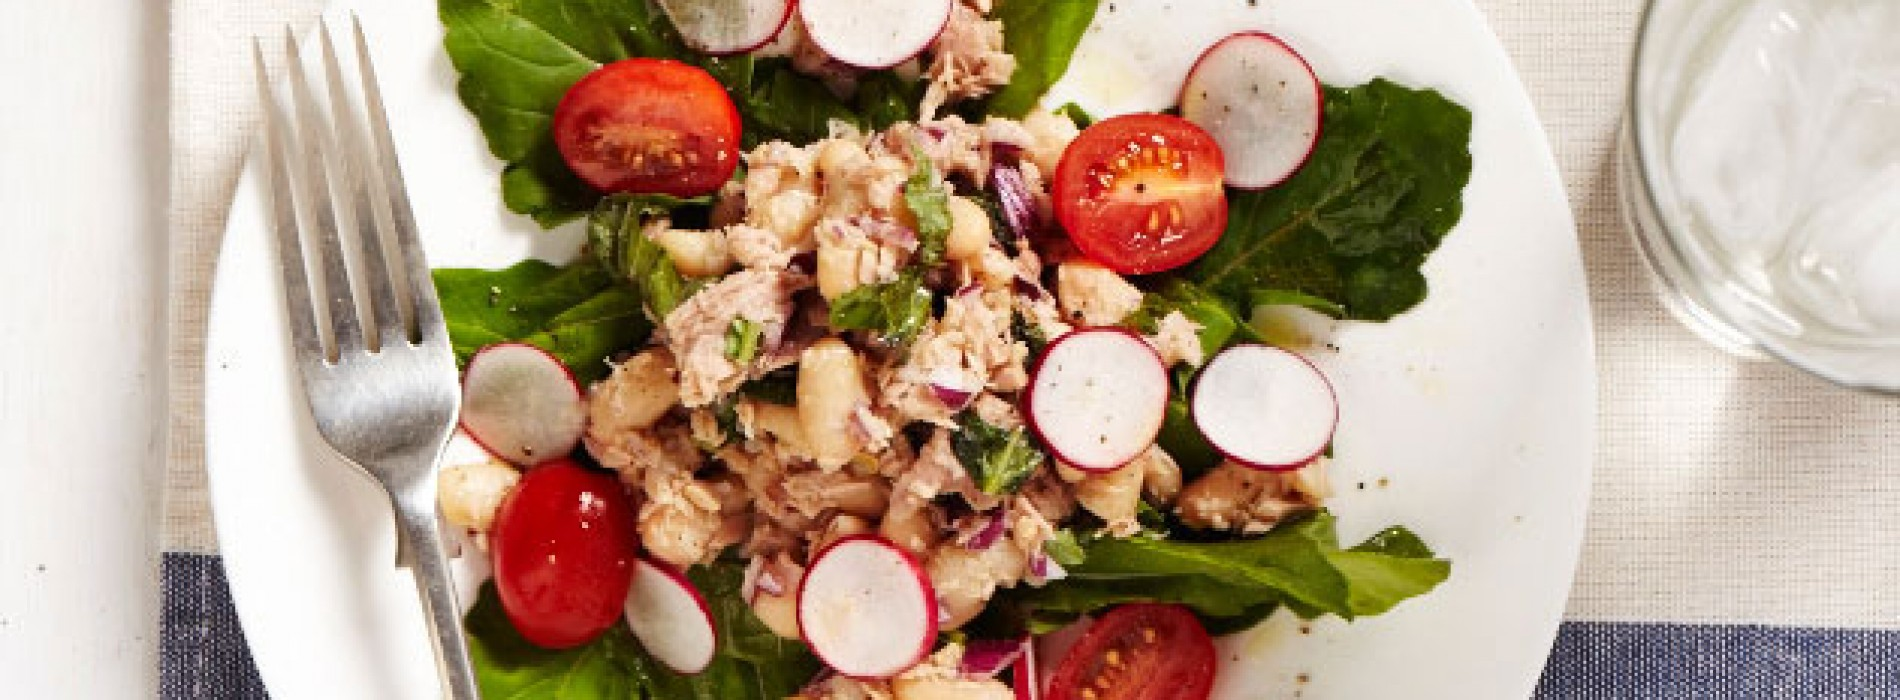 Summer Lunch Week: Tuna White Bean Salad